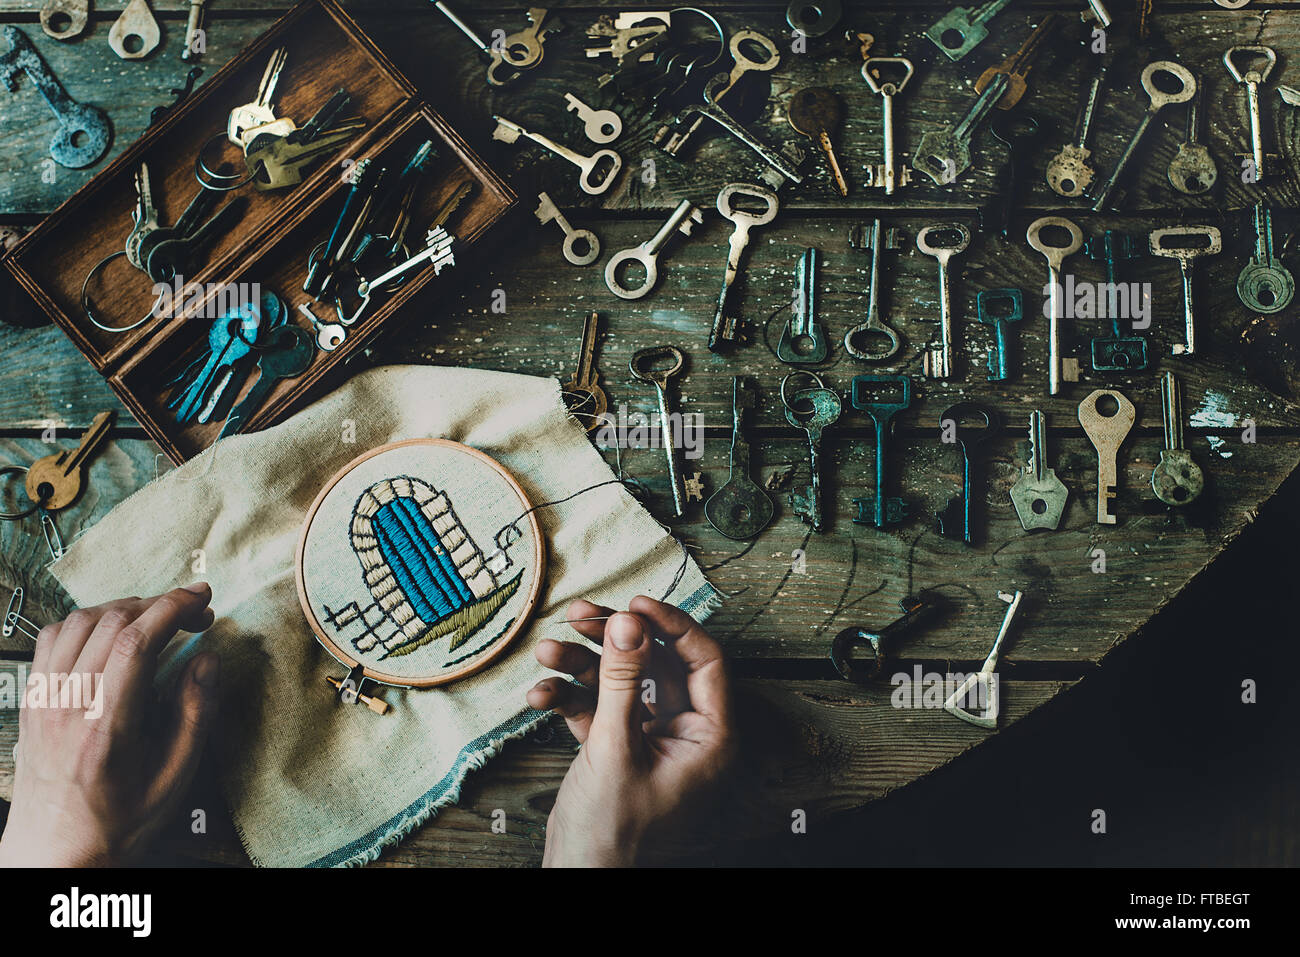 Wes Anderson from above top view hands keys embroidery needlework locked princess in the tower needle open texture - Stock Image